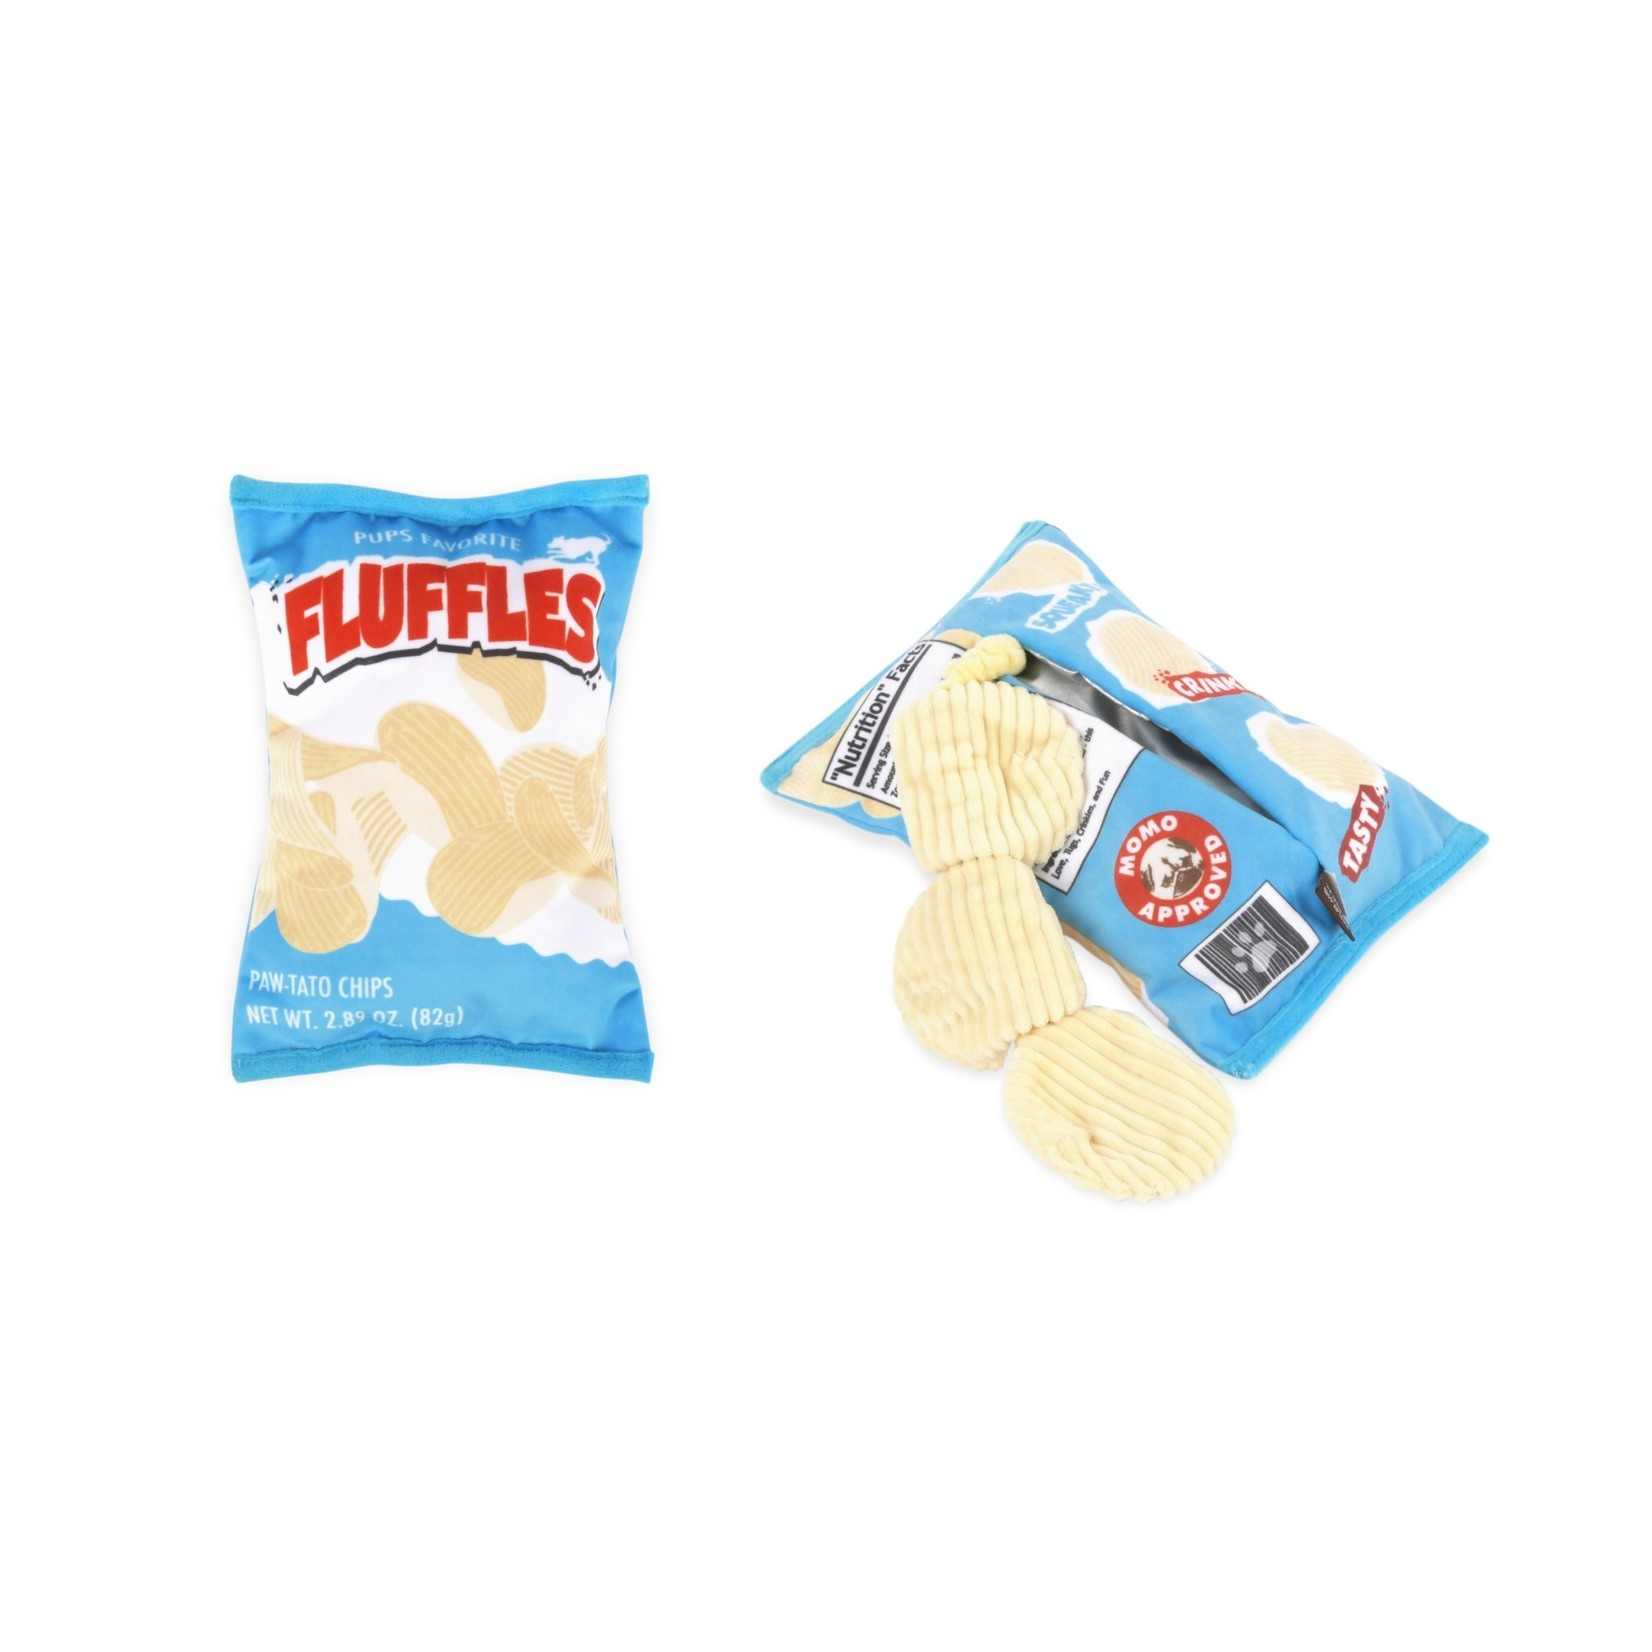 PLAY PLAY Fluffles Chips